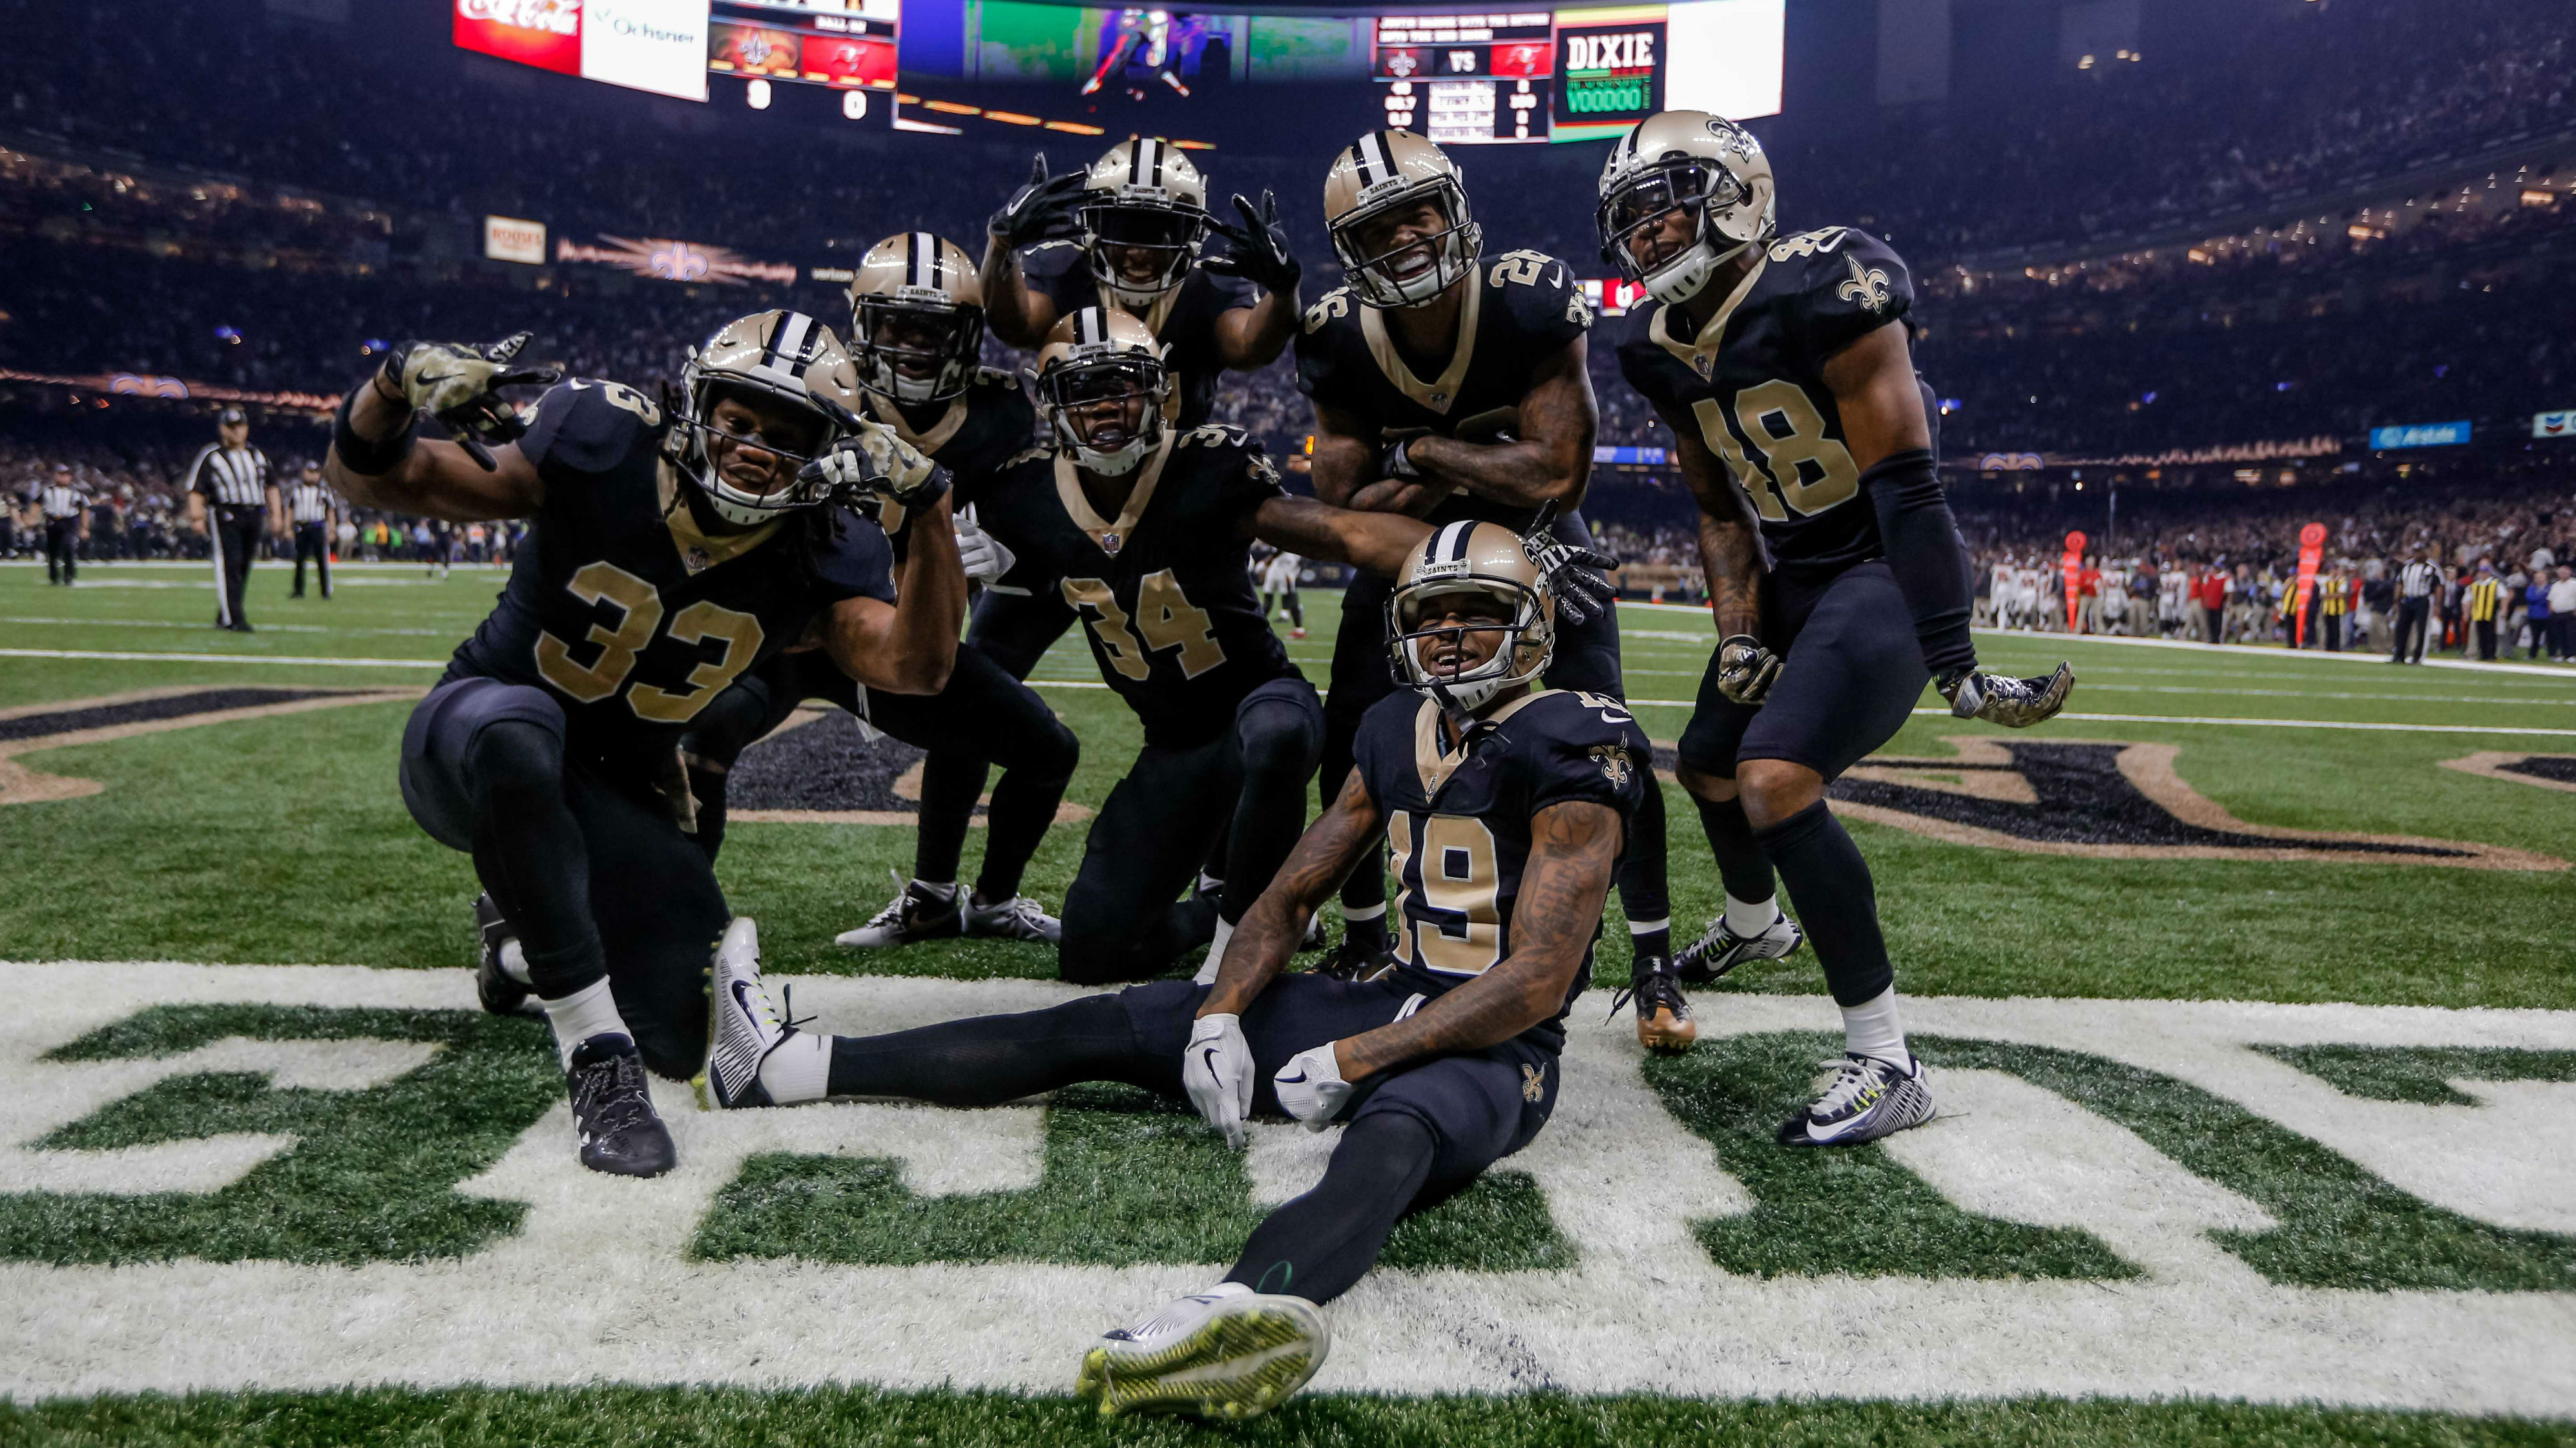 New Orleans, LA, USA; New Orleans Saints Justin Hardee (center) celebrates with special teams teammates posing for a photo in the endzone after a blocked punt for a touchdown against the Tampa Bay Buccaneers during the first quarter of a game at the Mercedes-Benz Superdome.